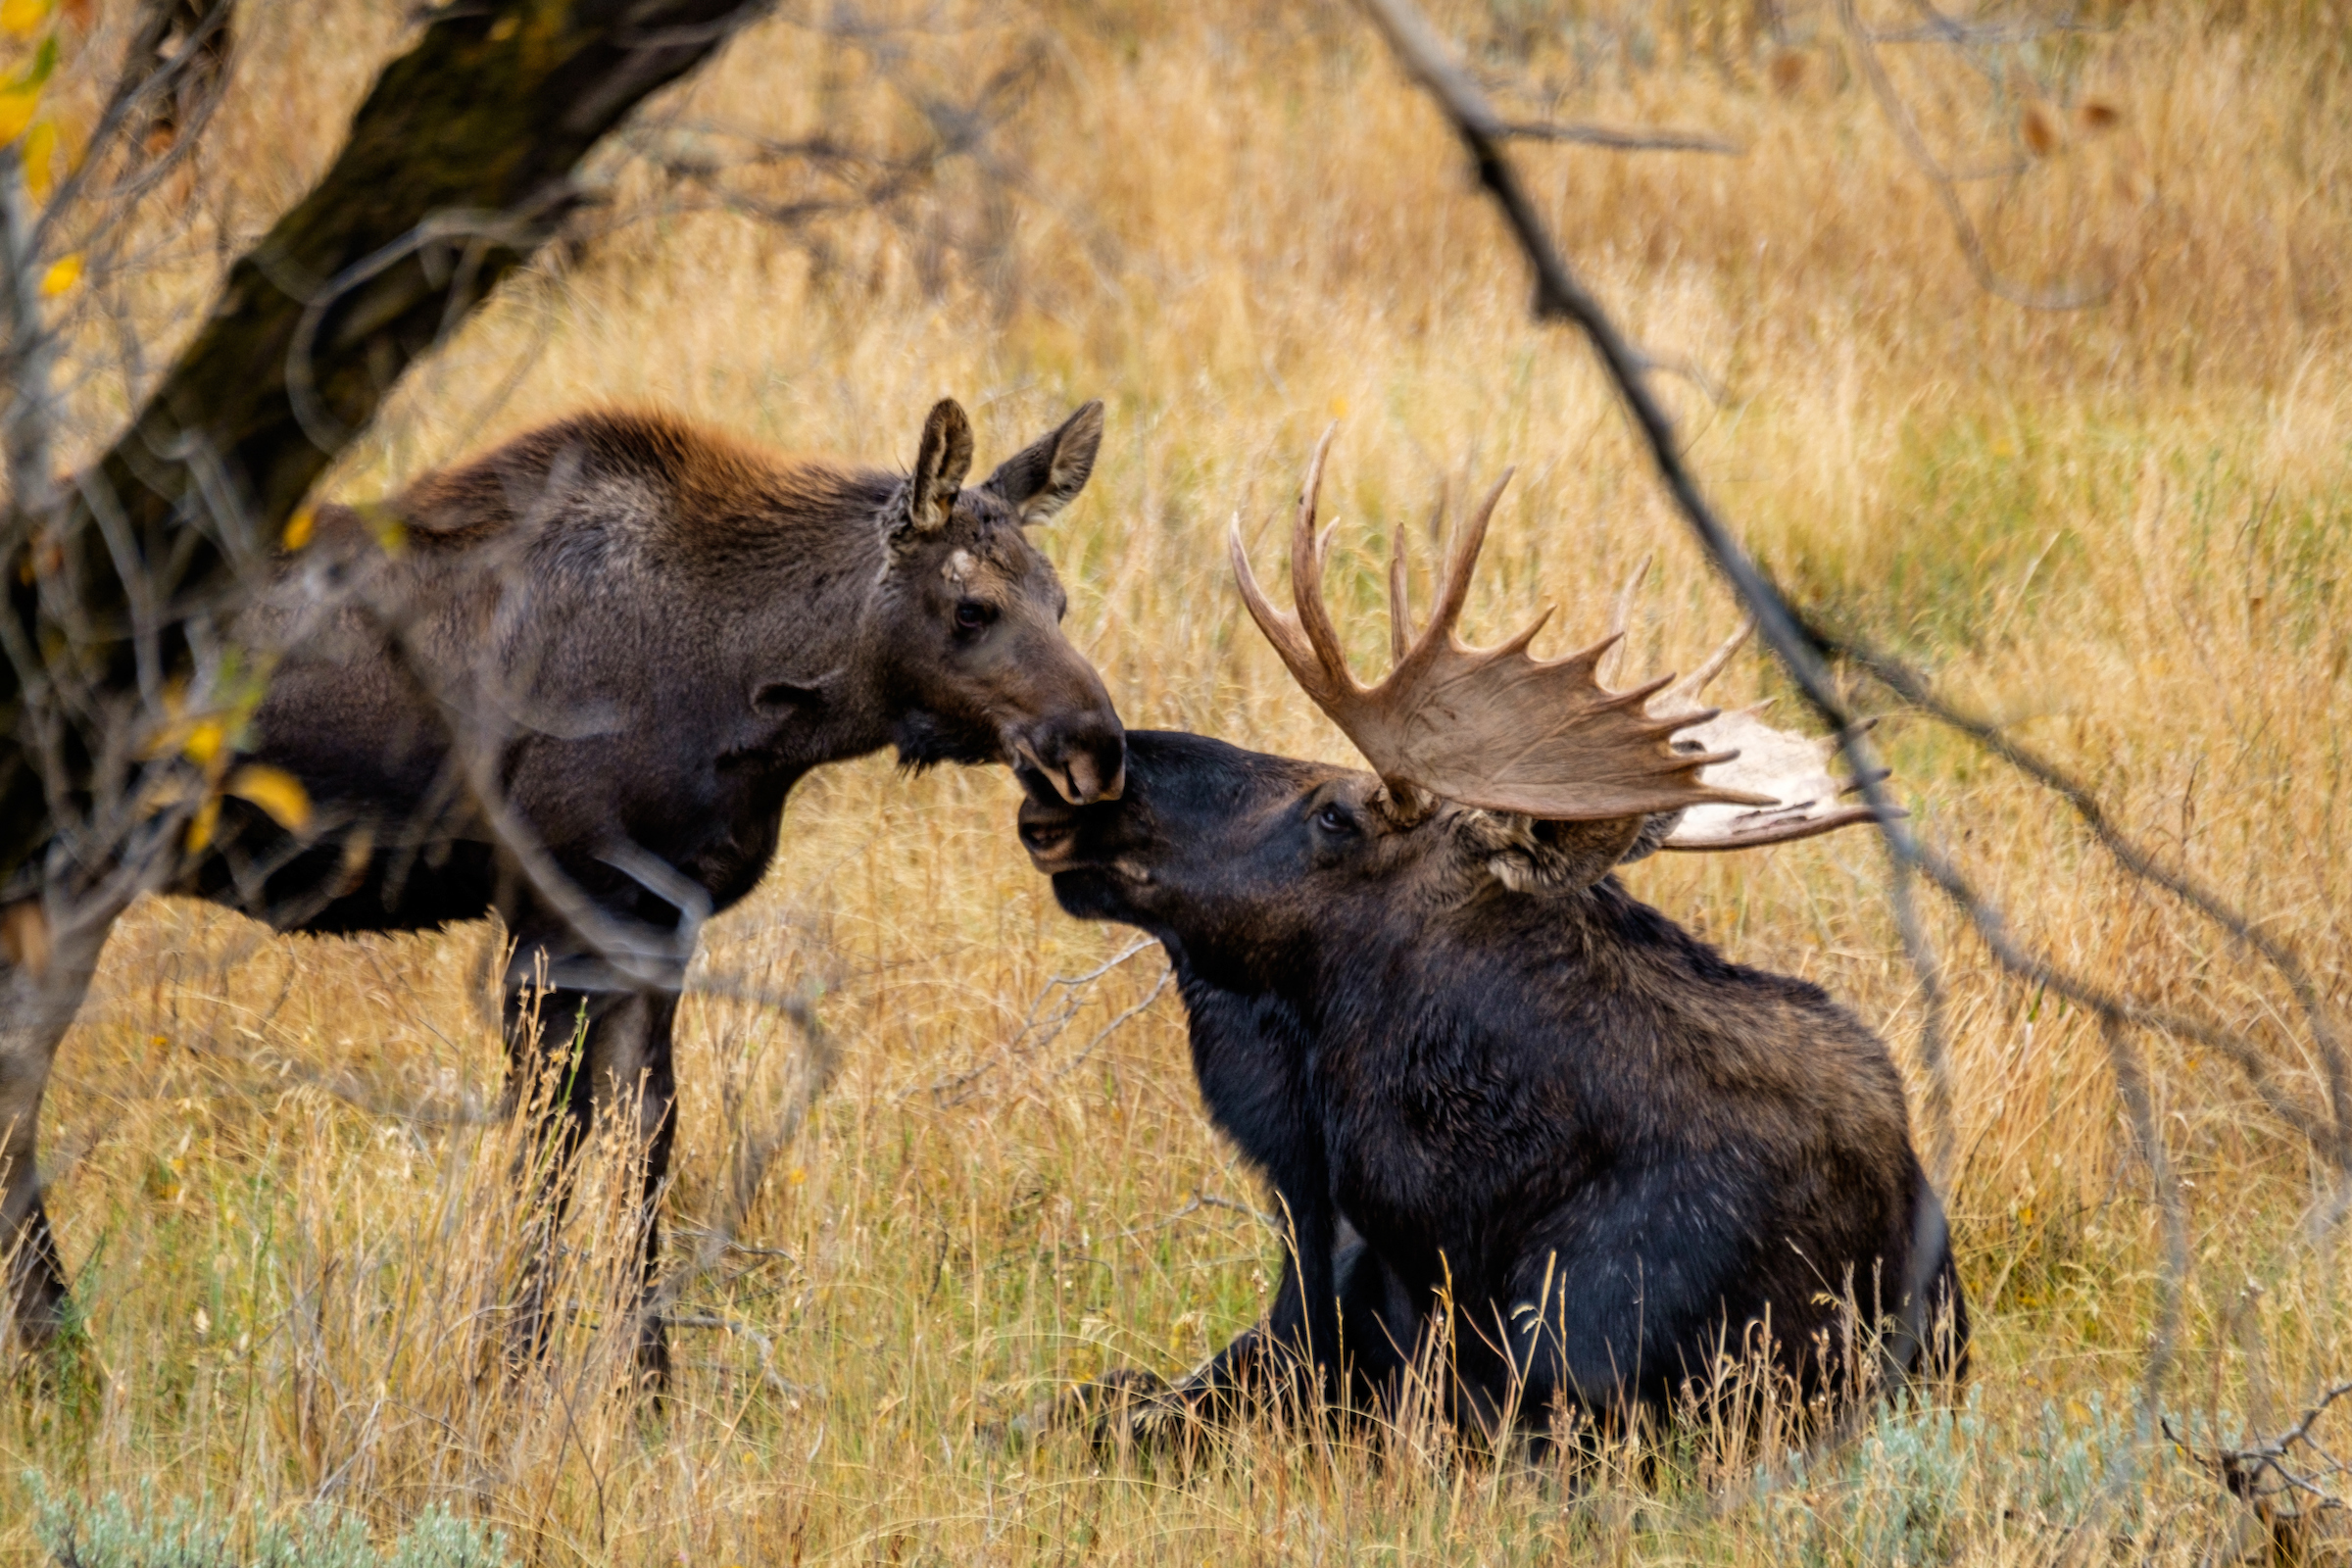 A moose moment in Grand Tetons National Park in Wyoming.